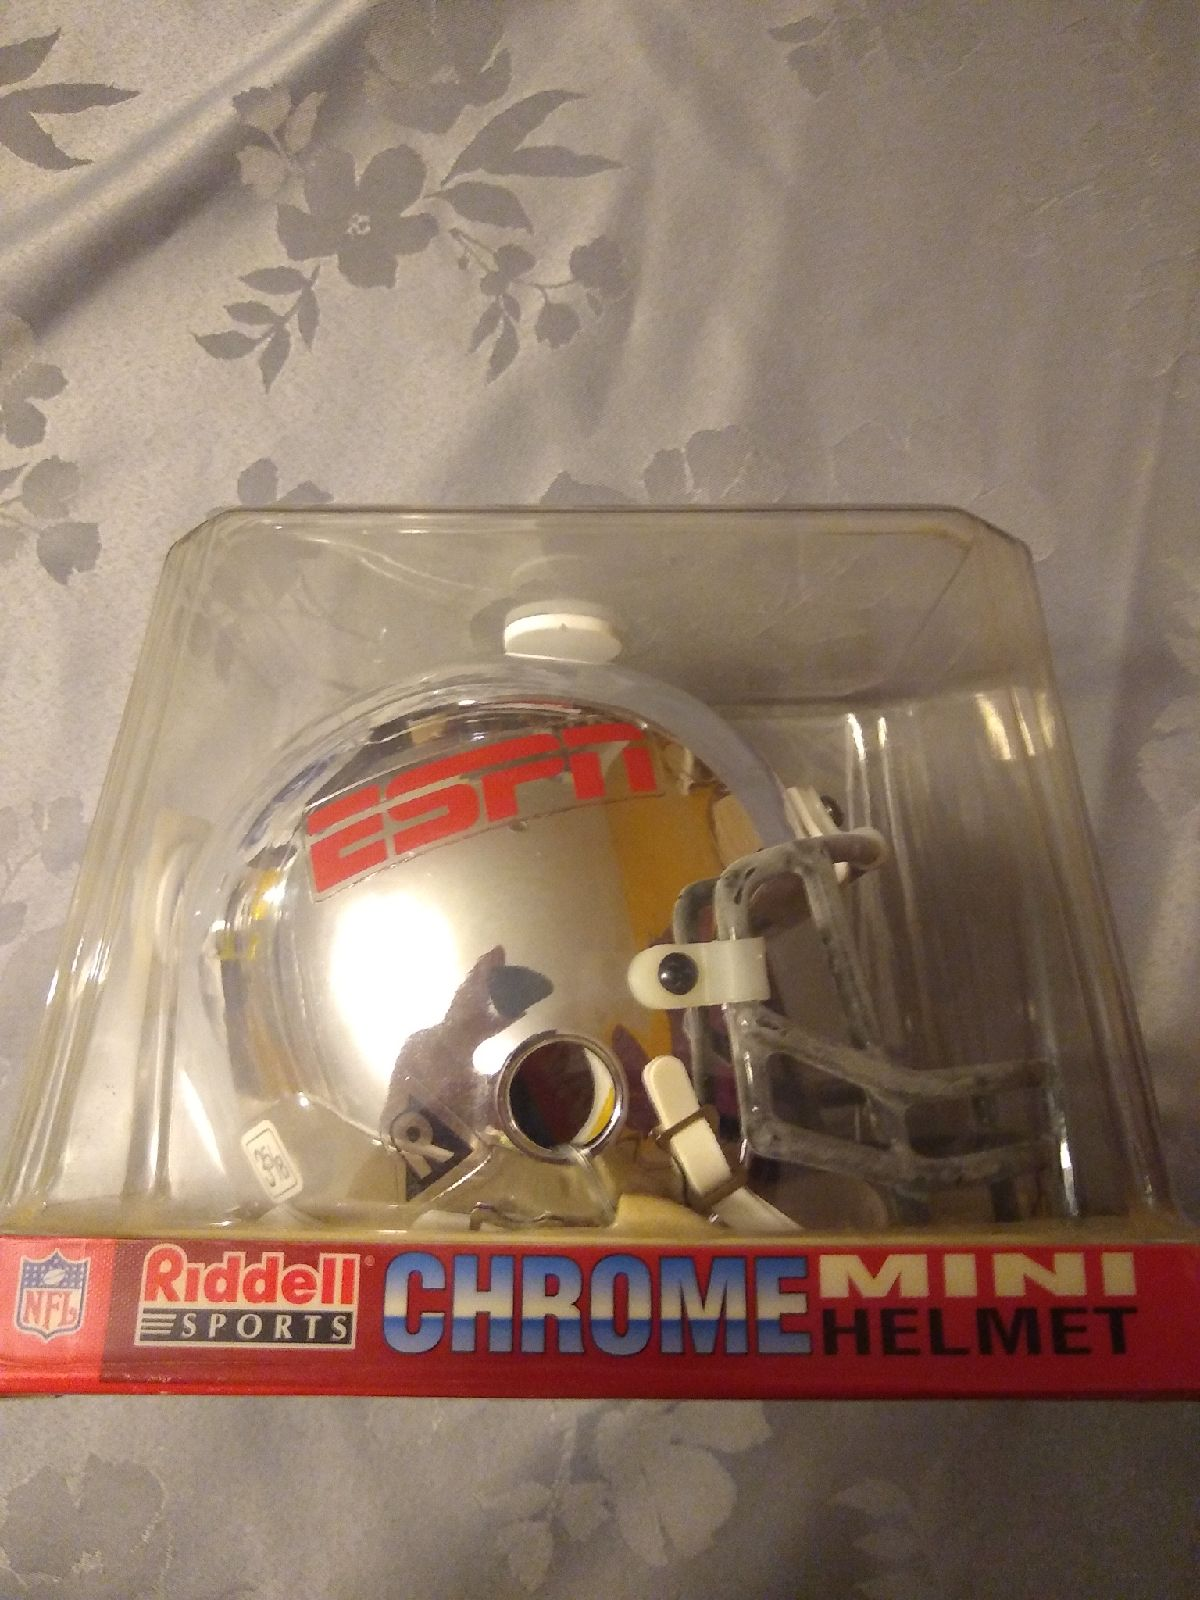 Riddell Chrome Mini Helmet ESPN